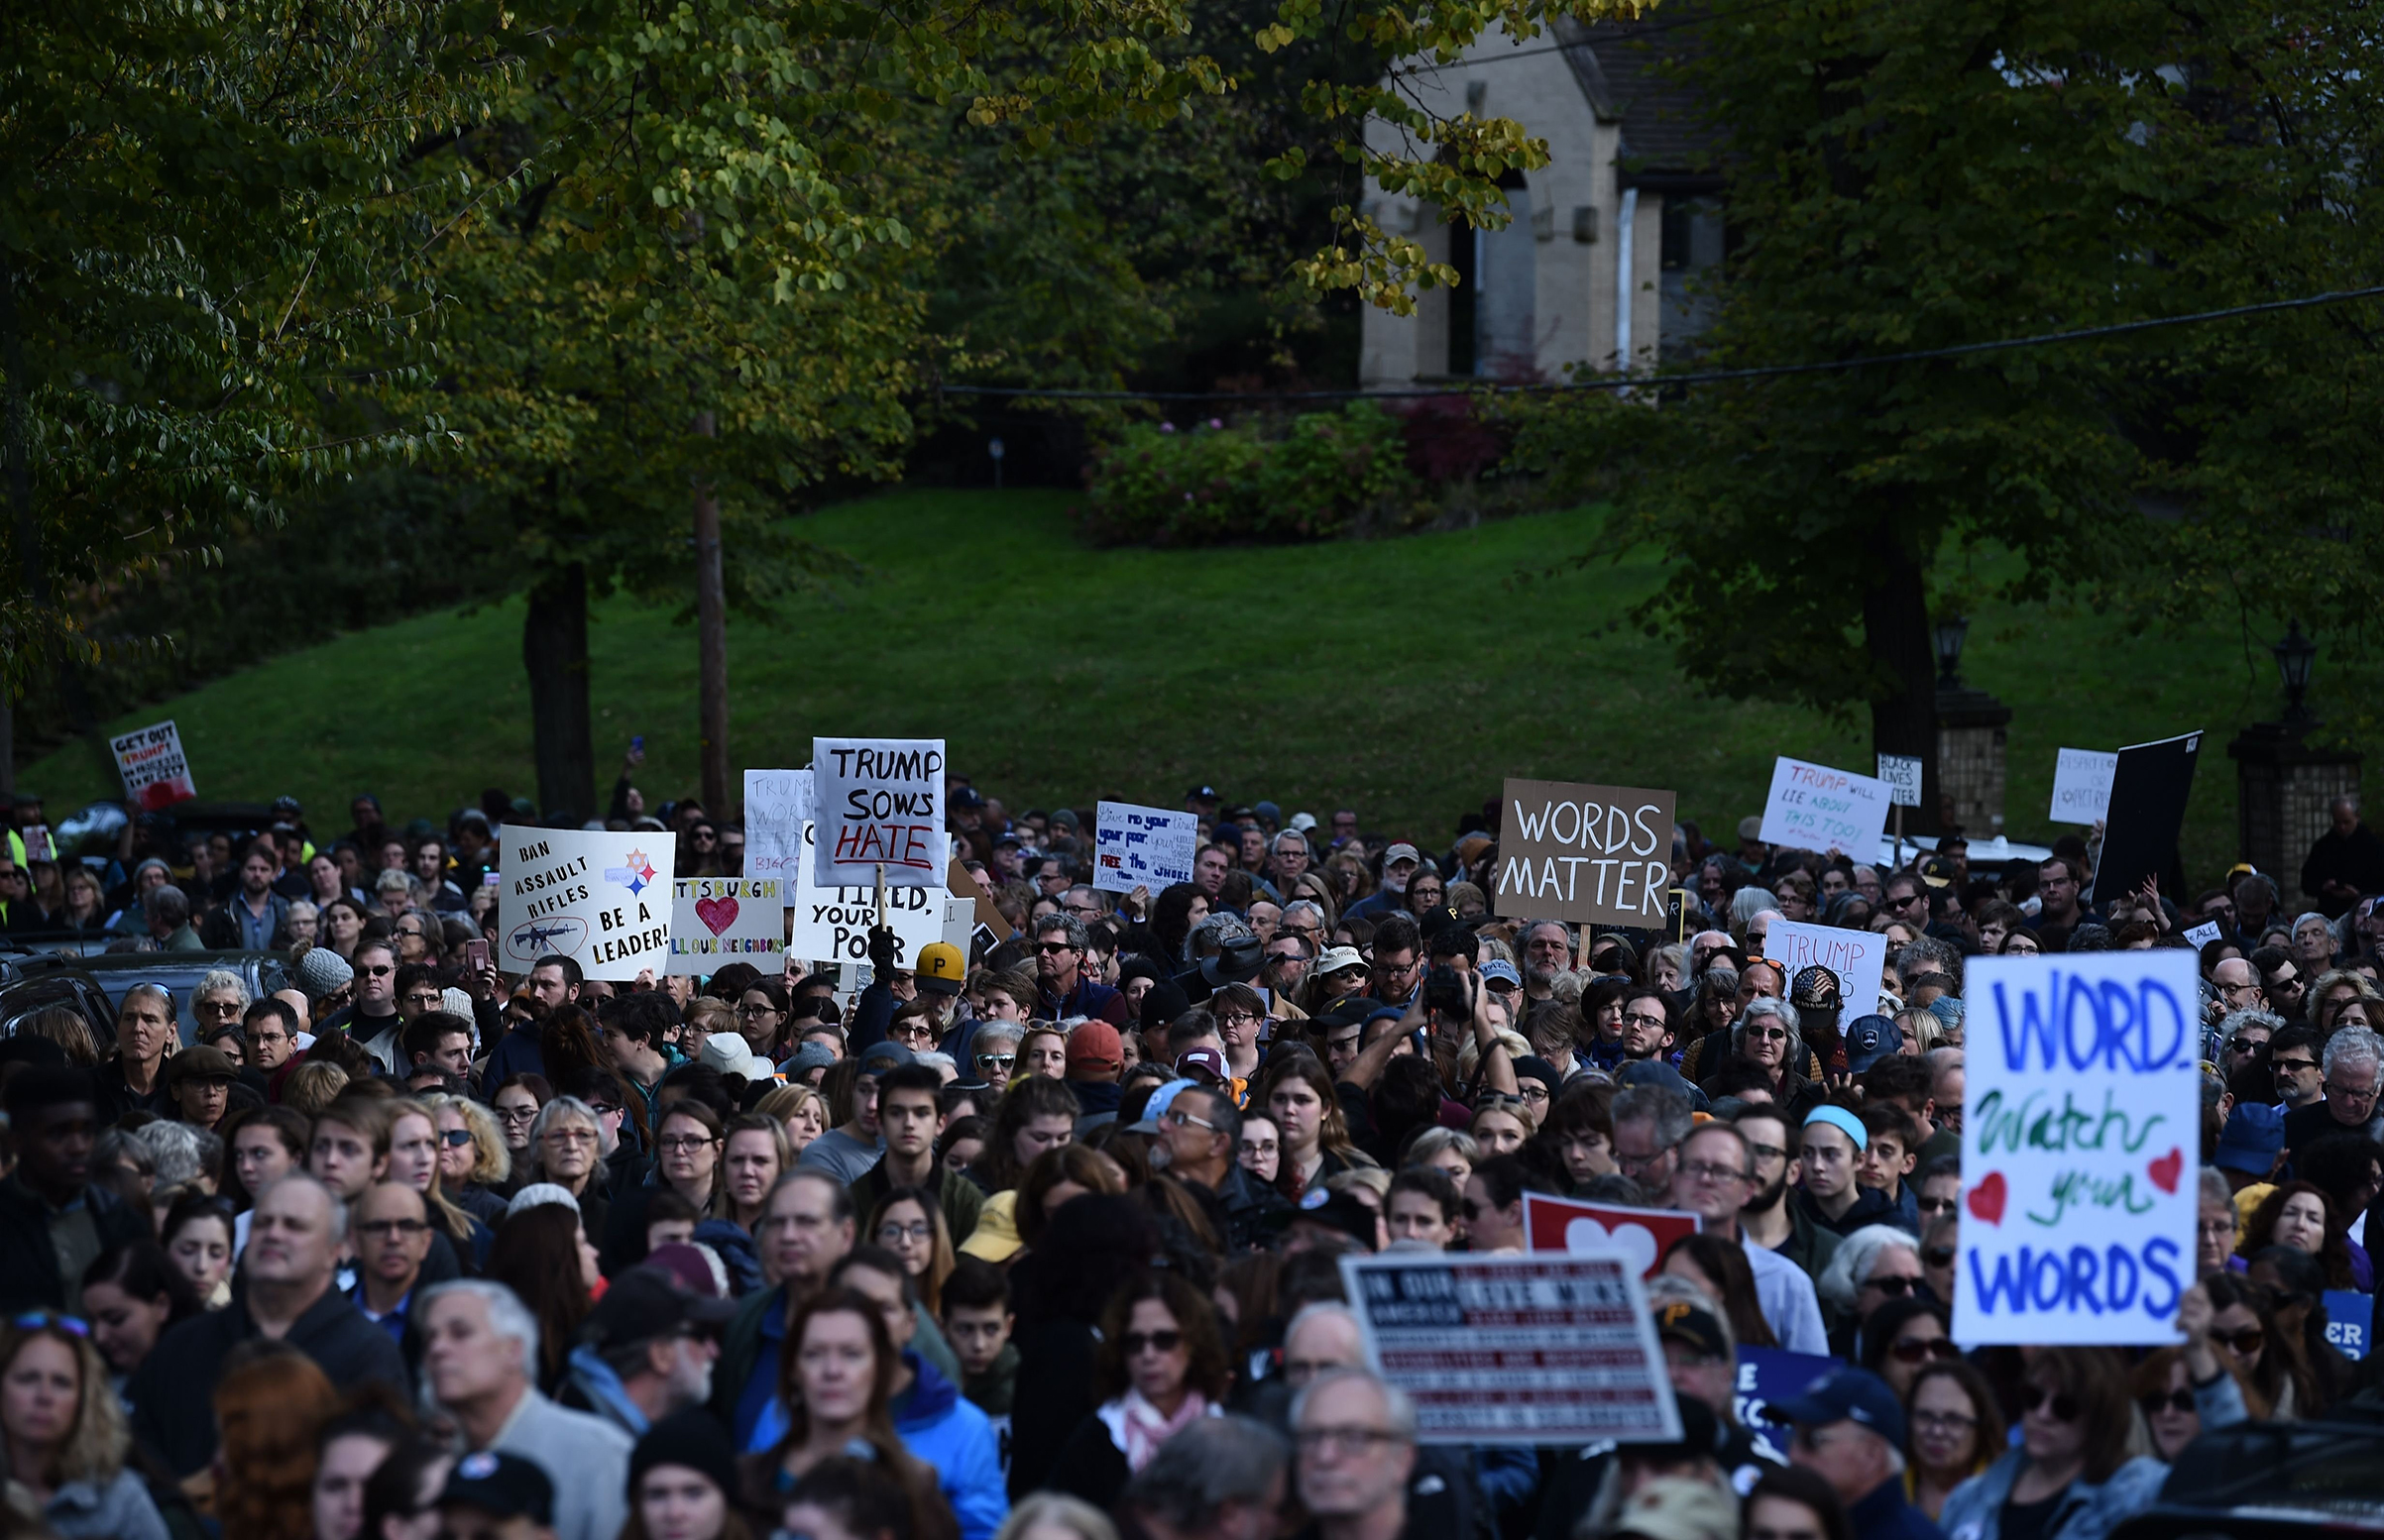 As Trump visited Pittsburgh on Oct. 30, protesters gathered near the Tree of Life synagogue